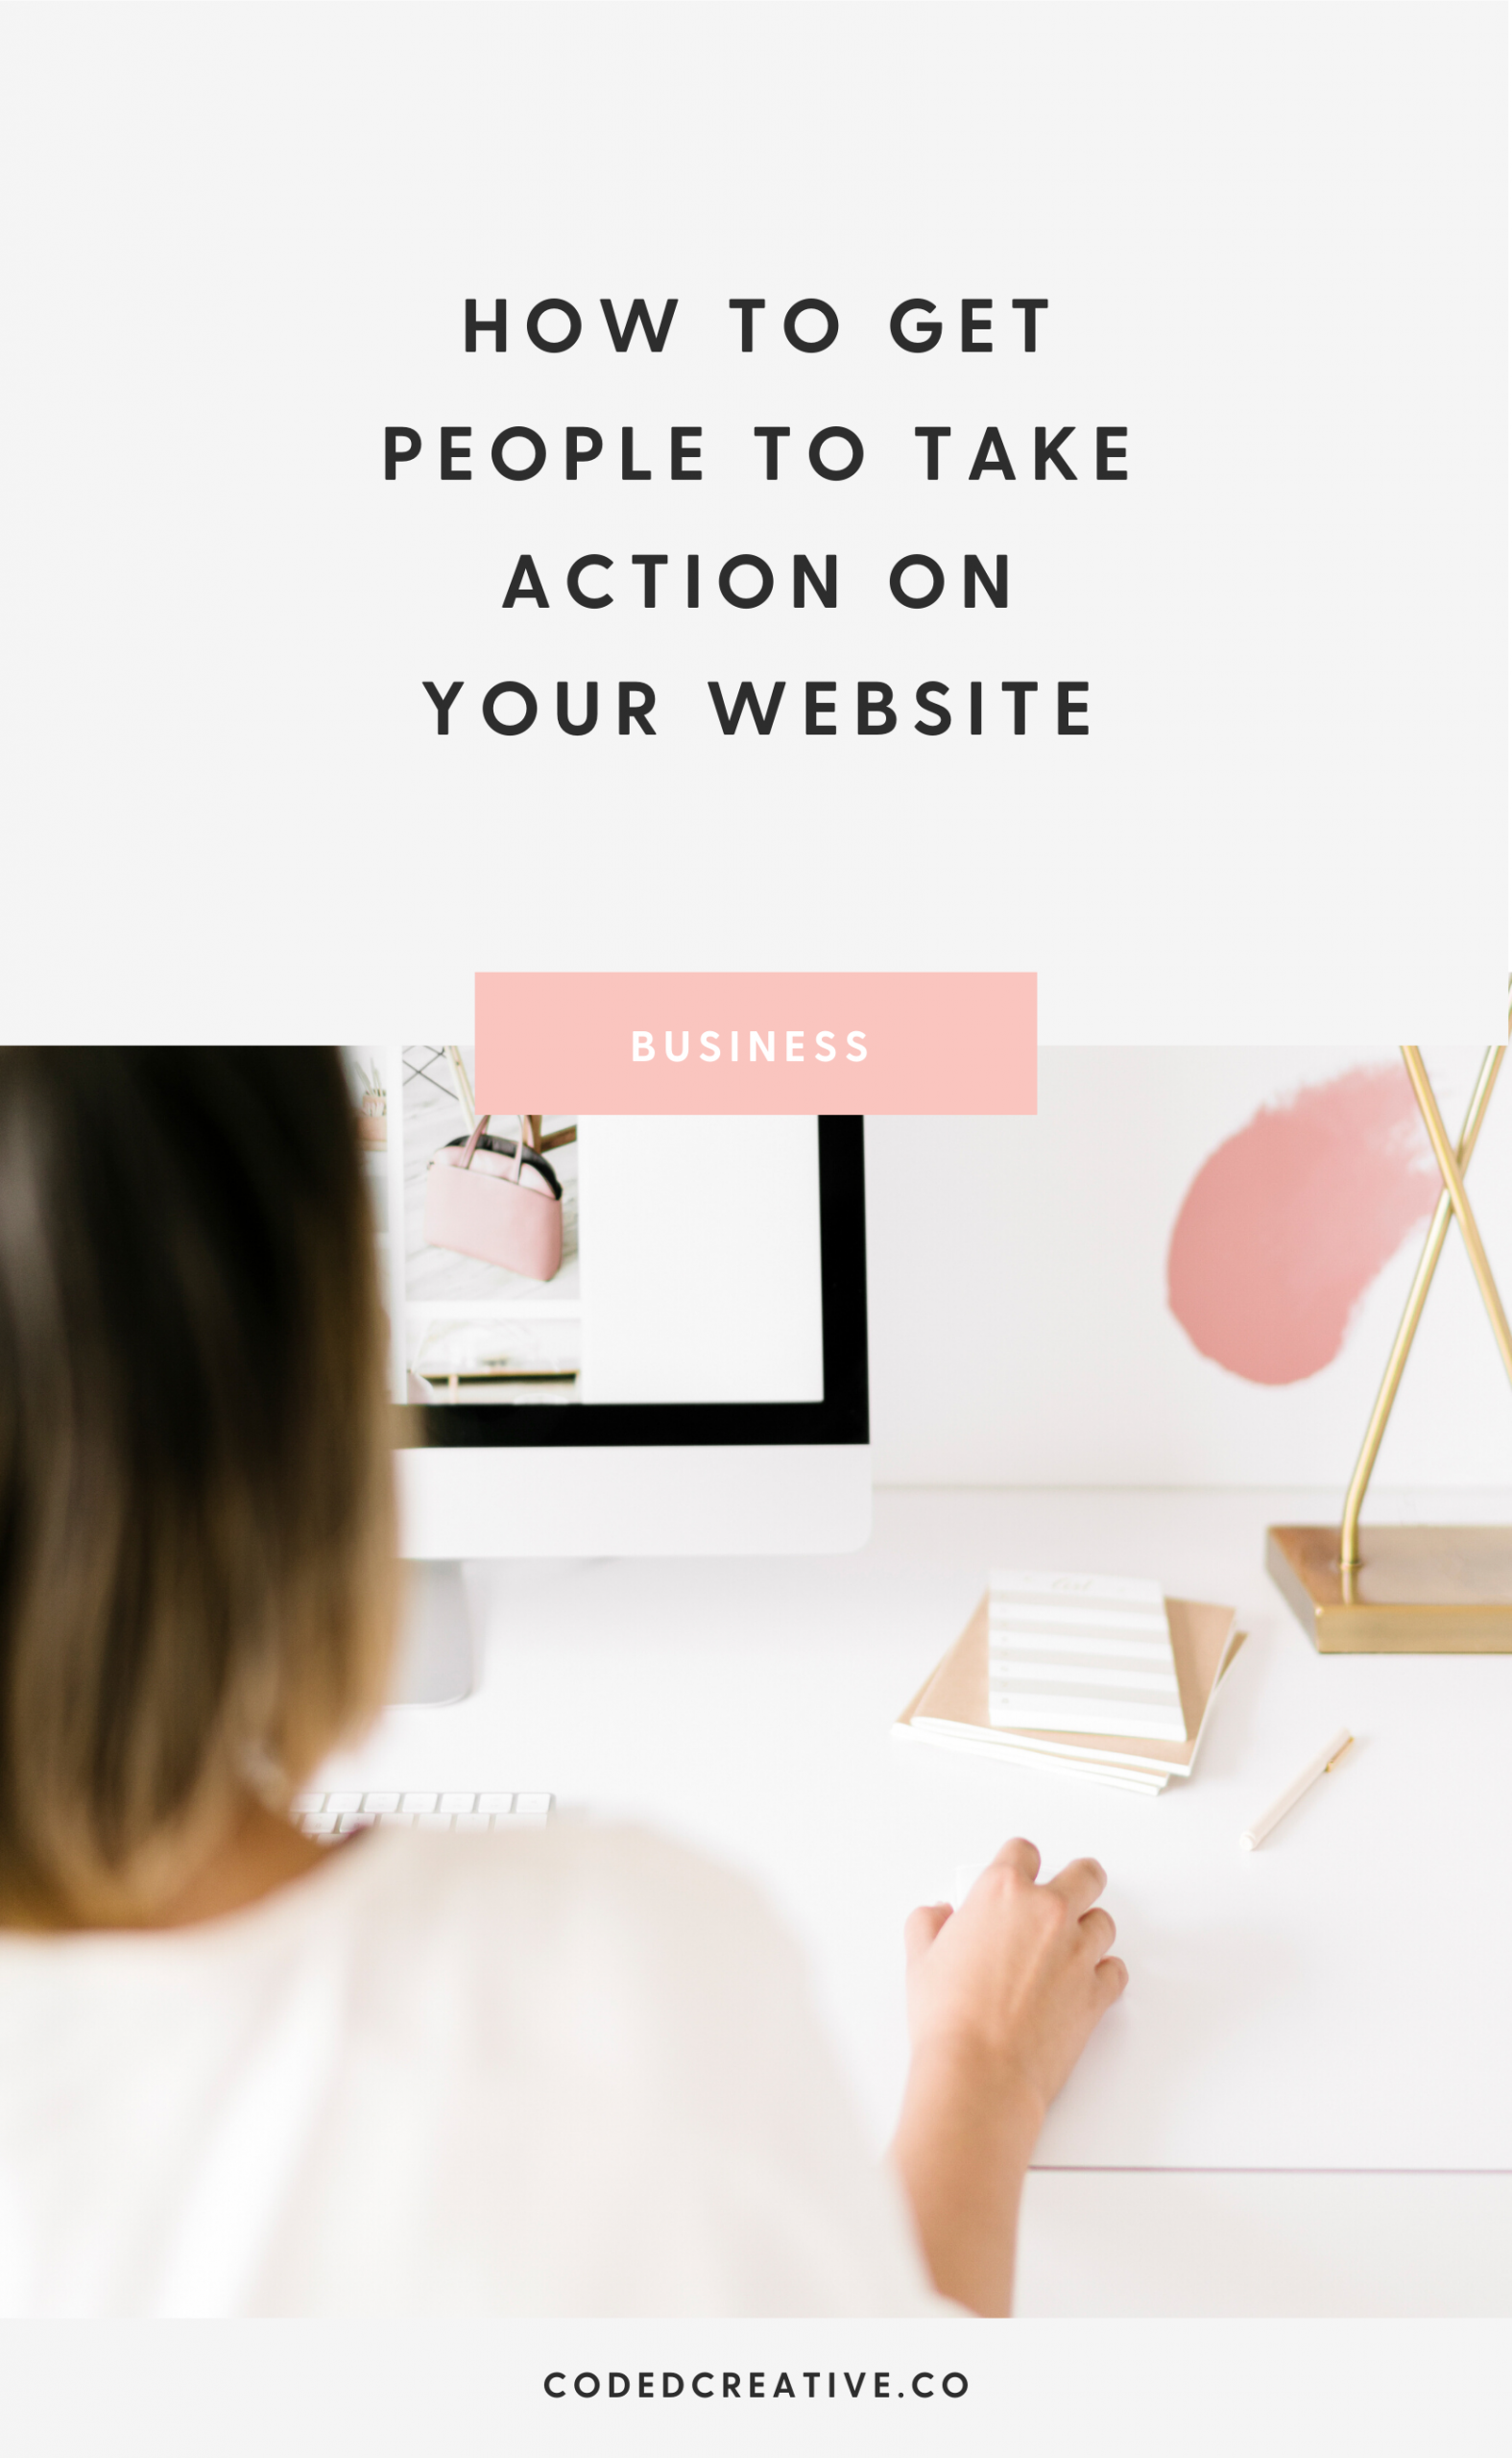 How to Get People to Take Action on Your Website